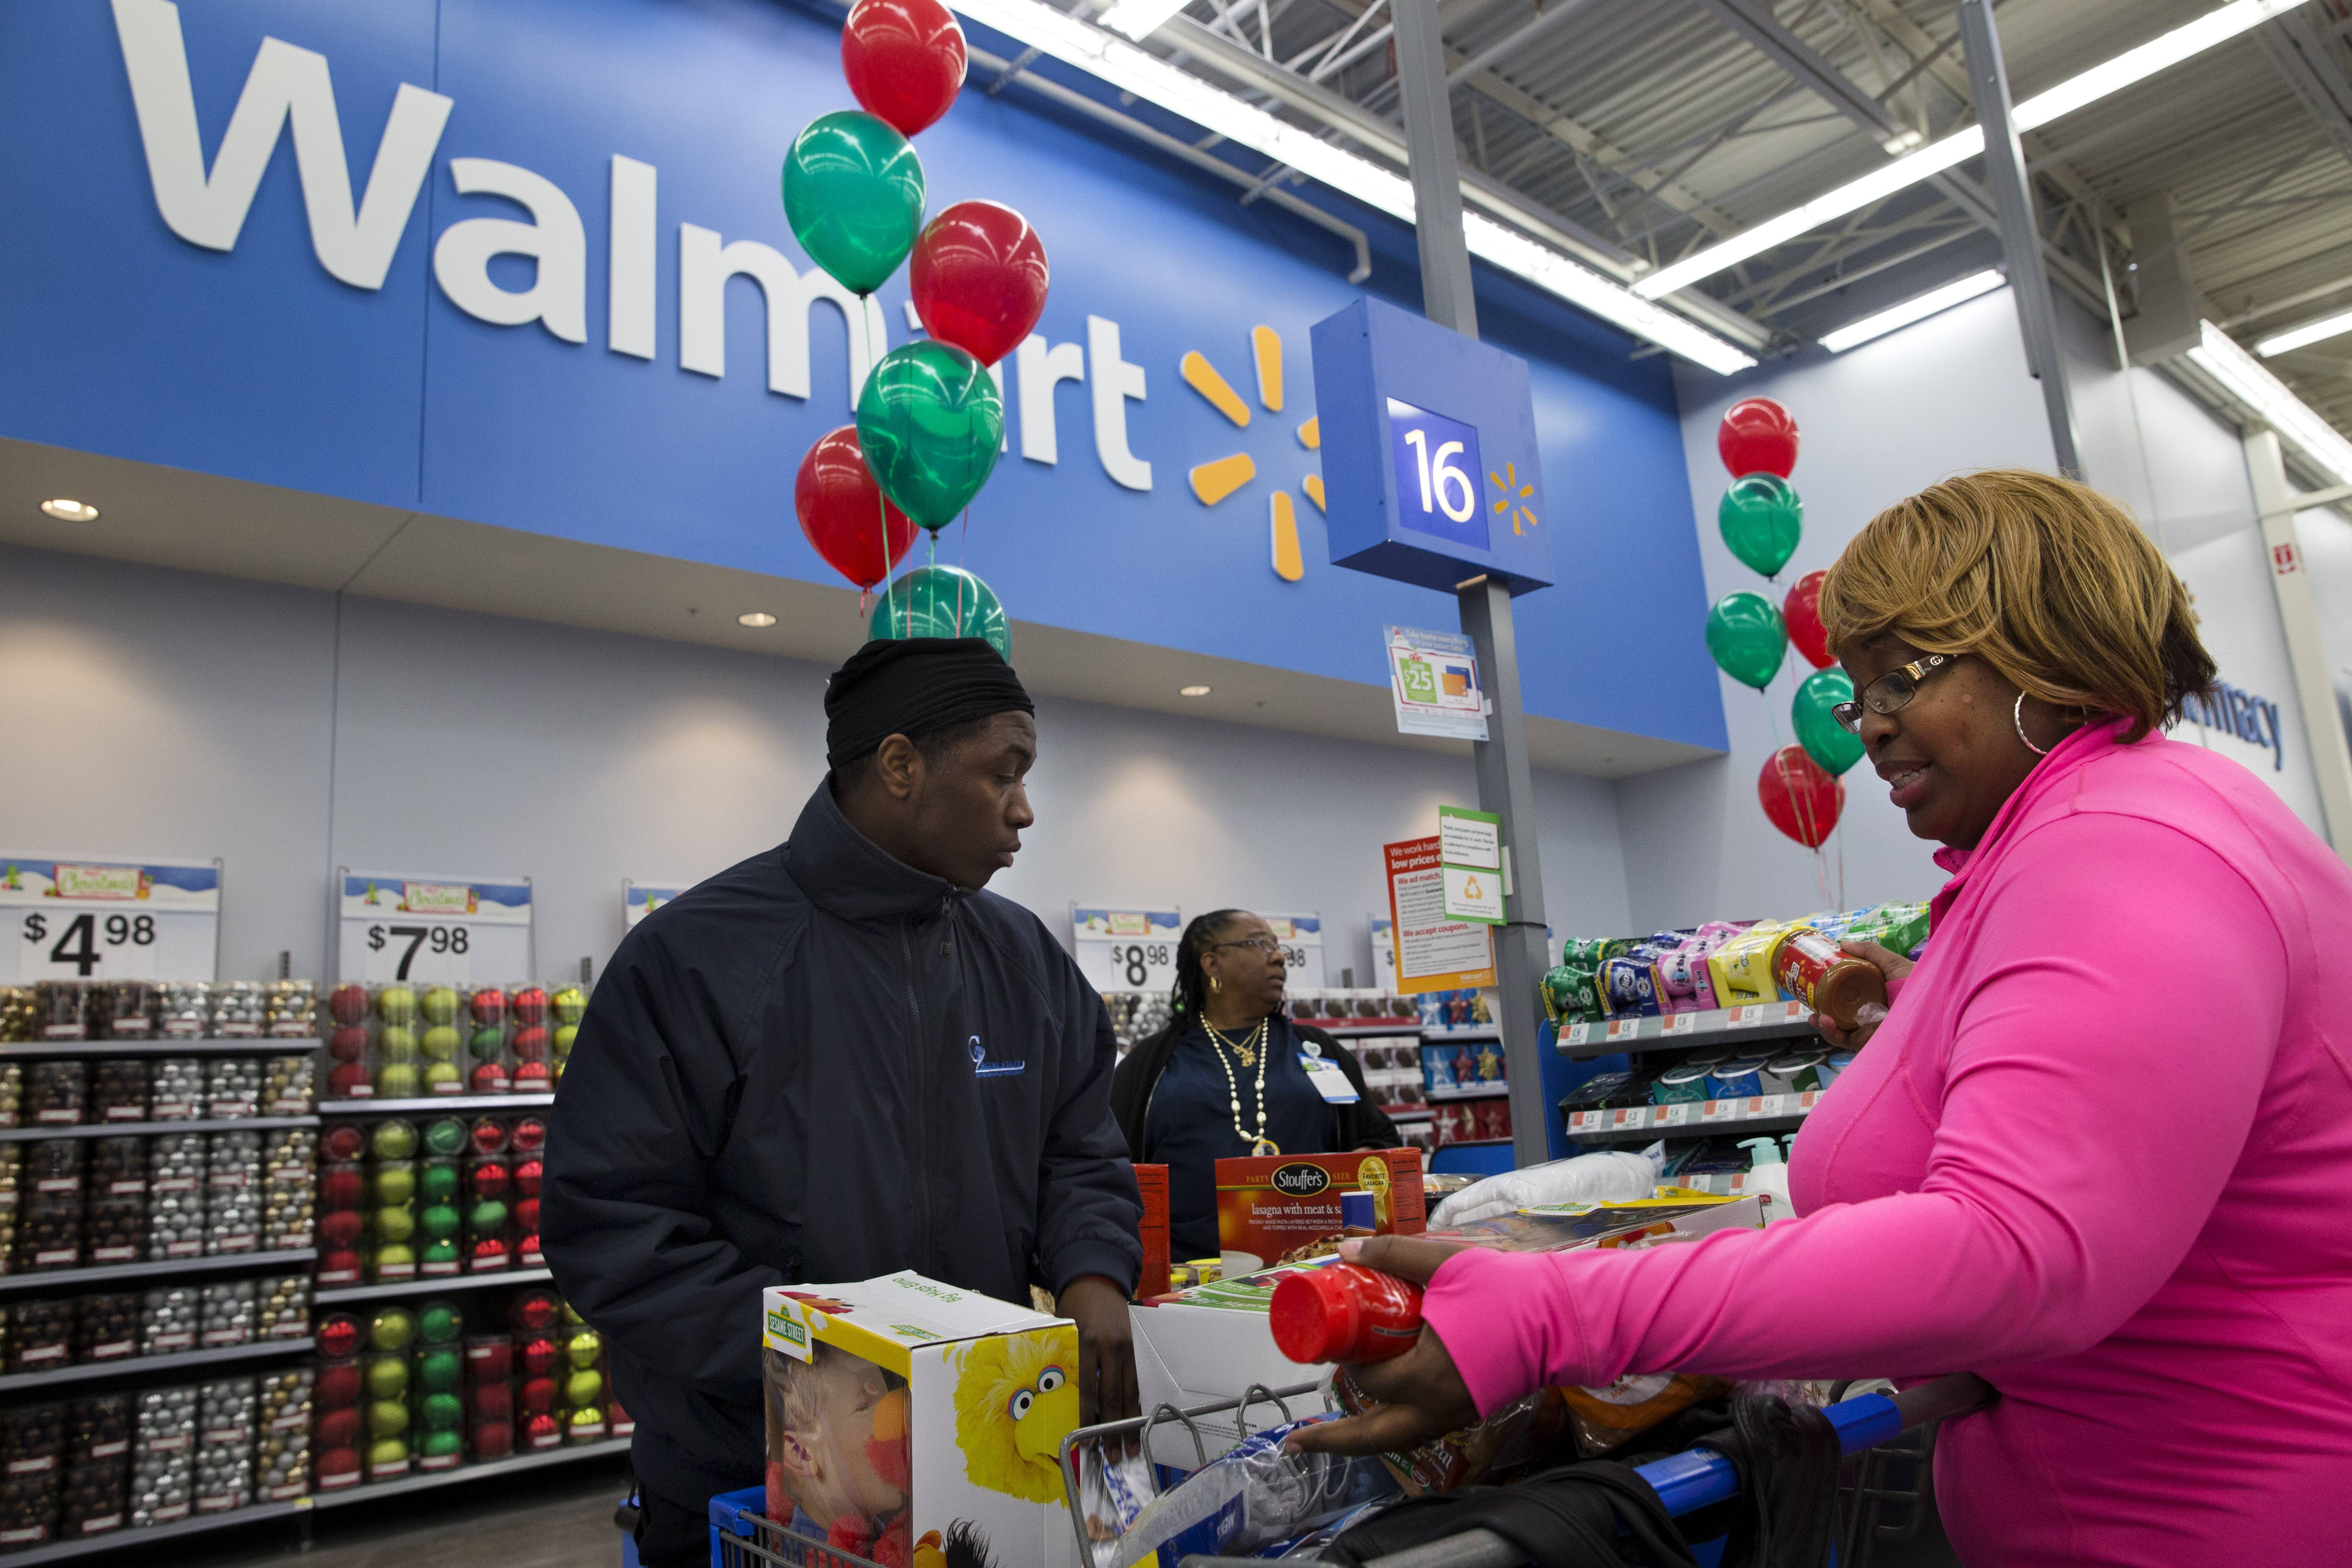 April Taylor, of Upper Marlboro, Md., right, buys items with her son Jarhon Taylor, left, on the opening day of a new Wal-Mart store in Washington. The world's largest retailer Wednesday said that it's expanding Savings Catcher, its online tool that compares prices on thousands of products with those of some of its competitors to cities nationwide in the next few months.